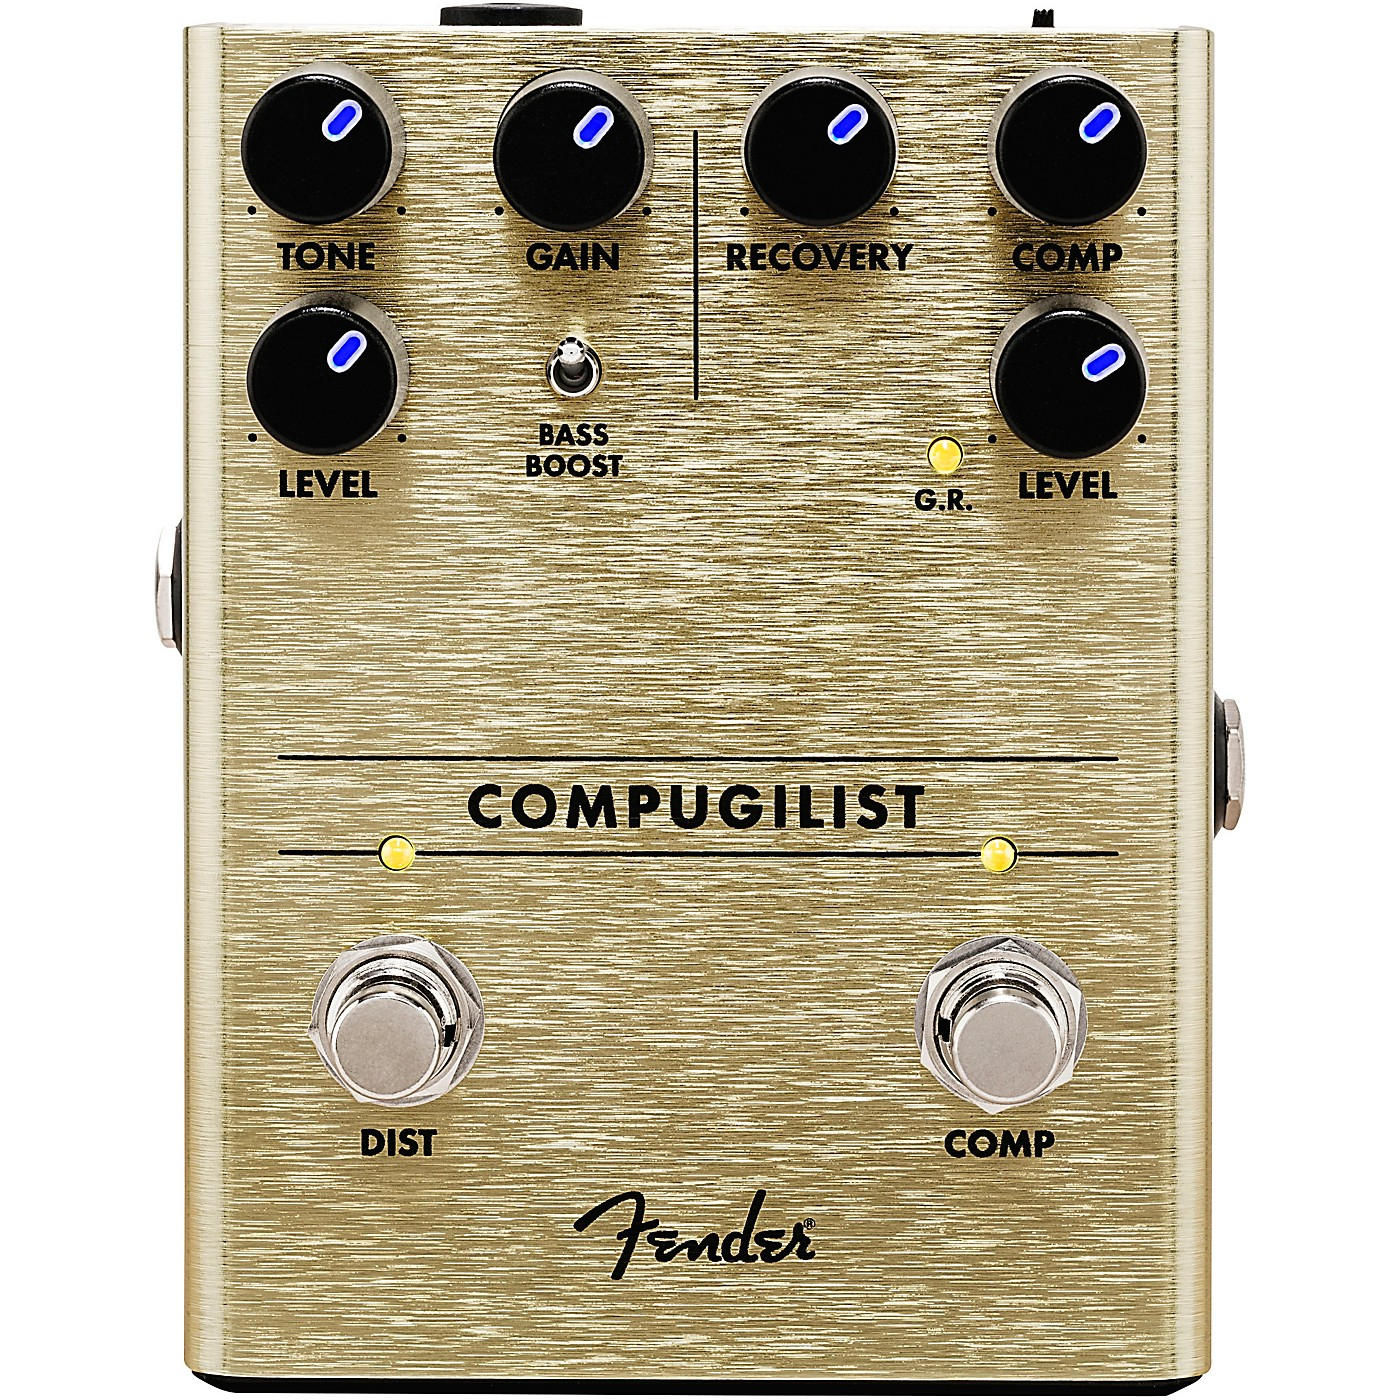 Fender Compugilist Compressor/Distortion Effects Pedal thumbnail